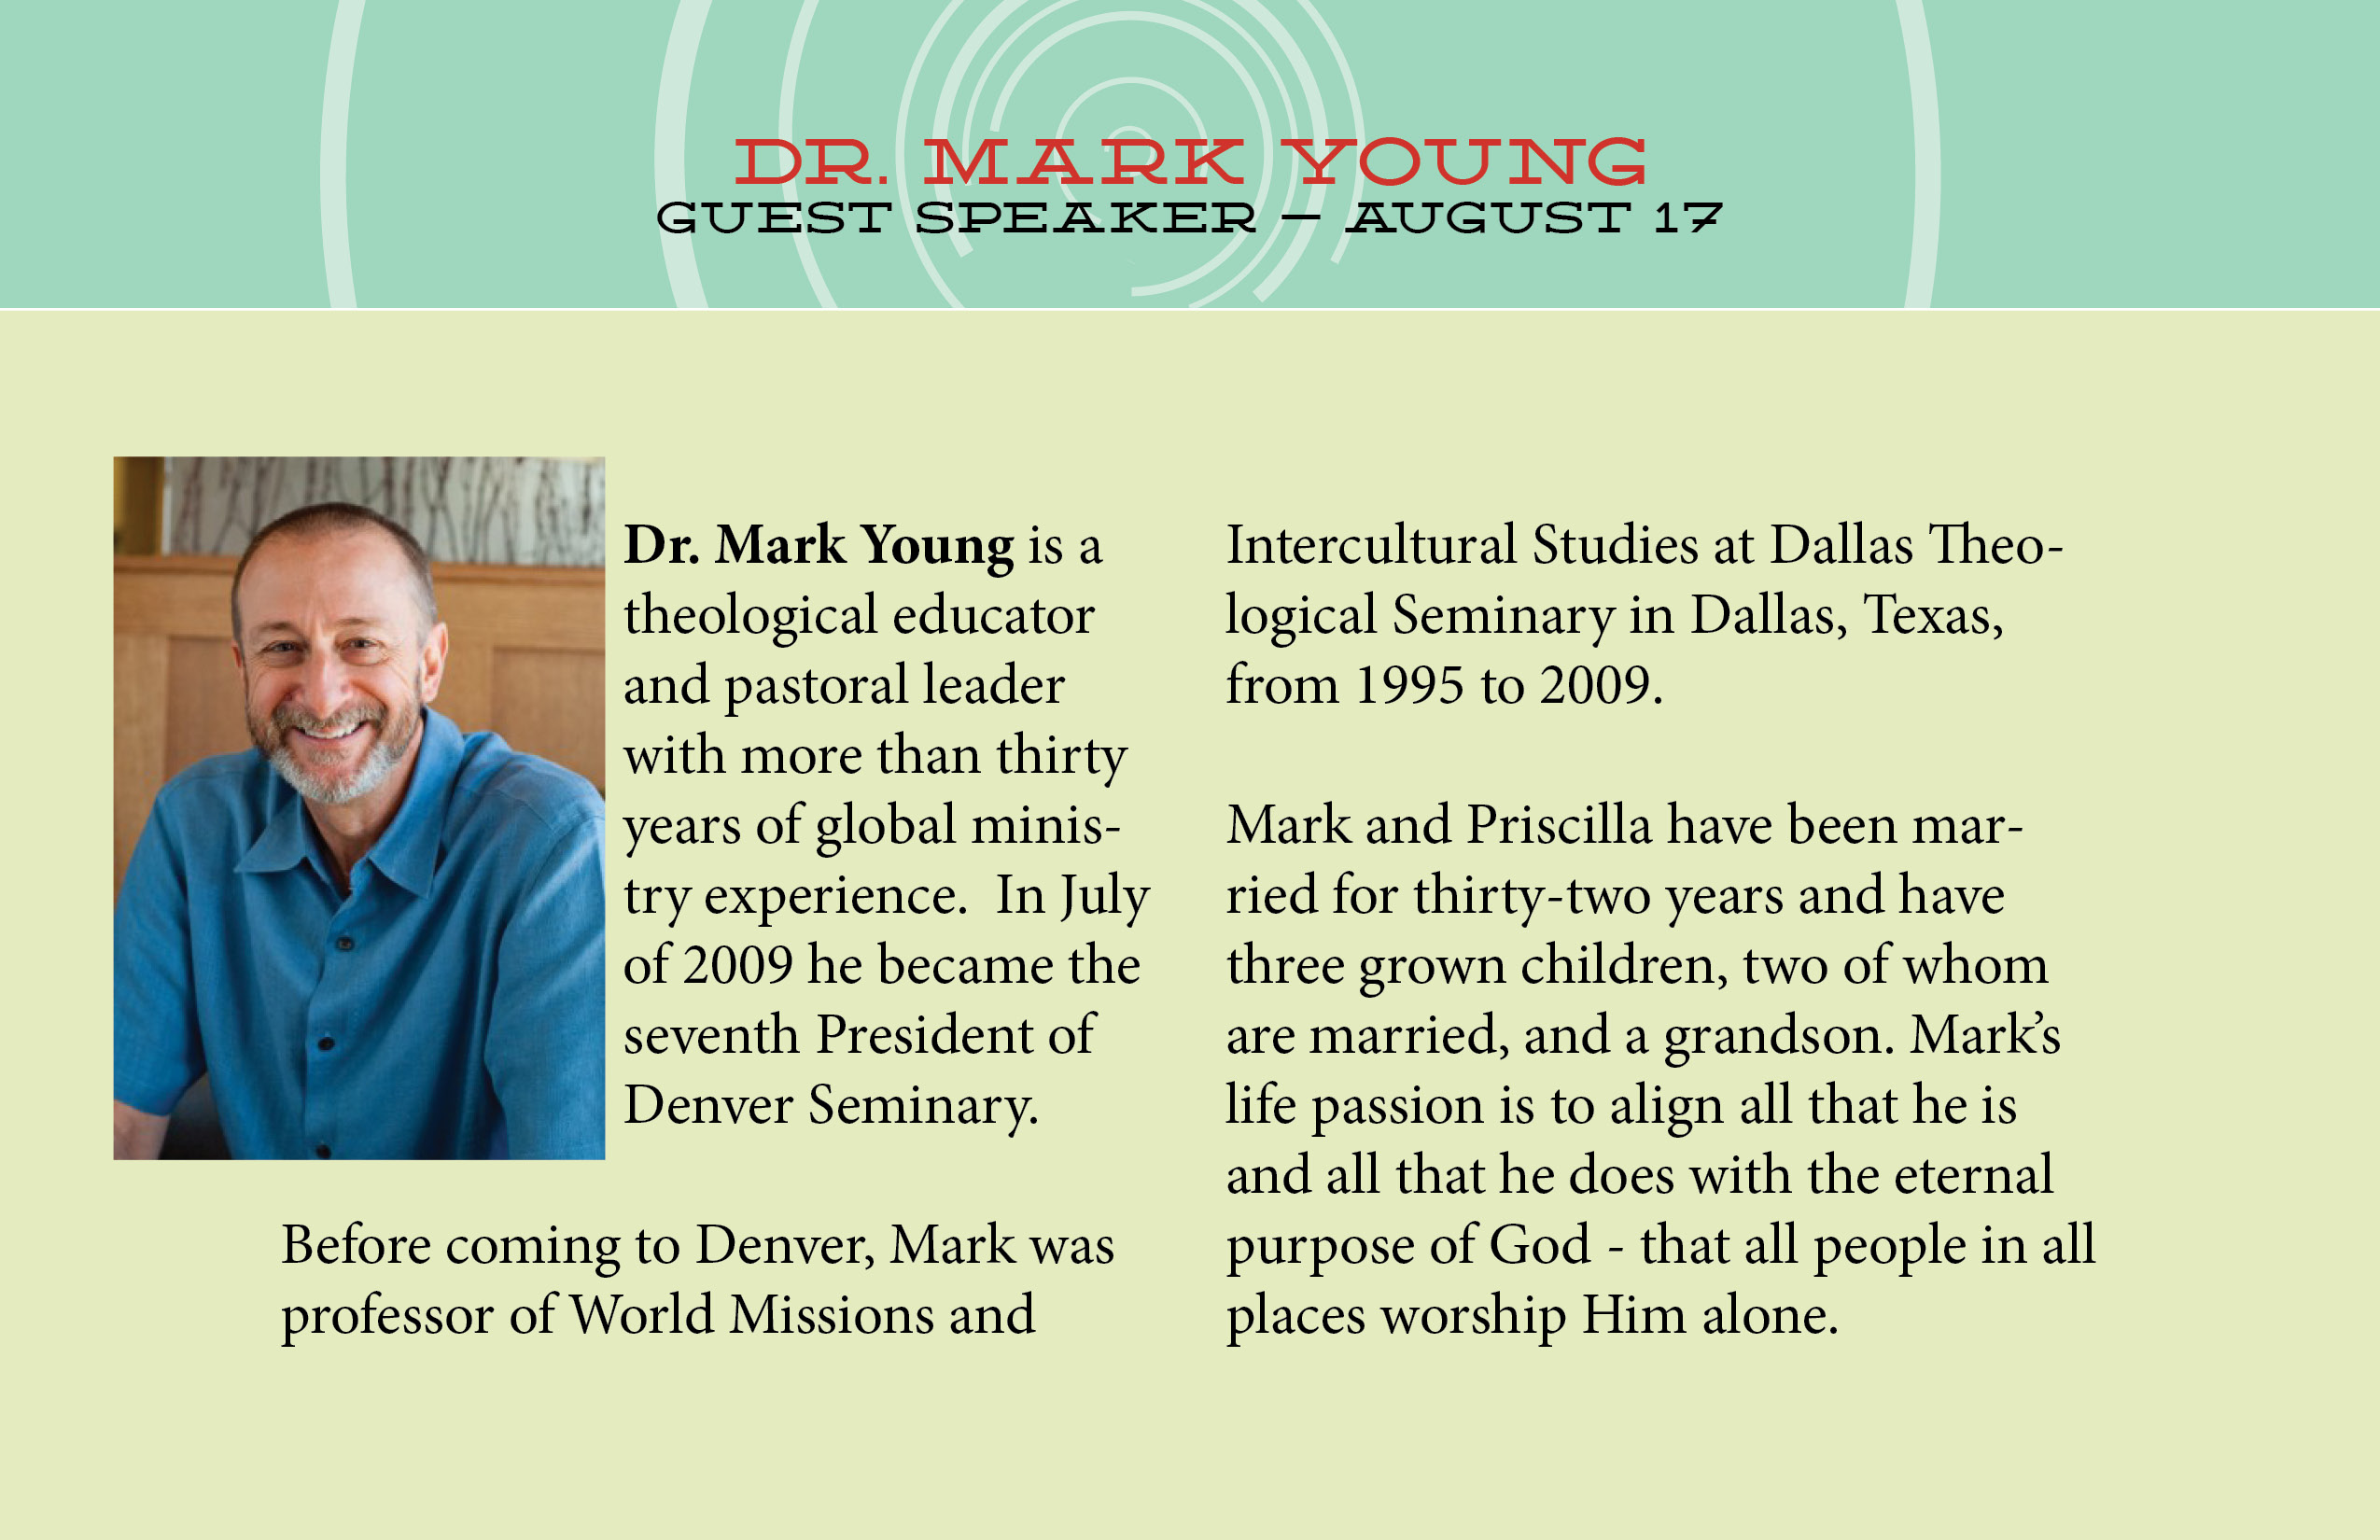 August 17th Dr. Mark Young